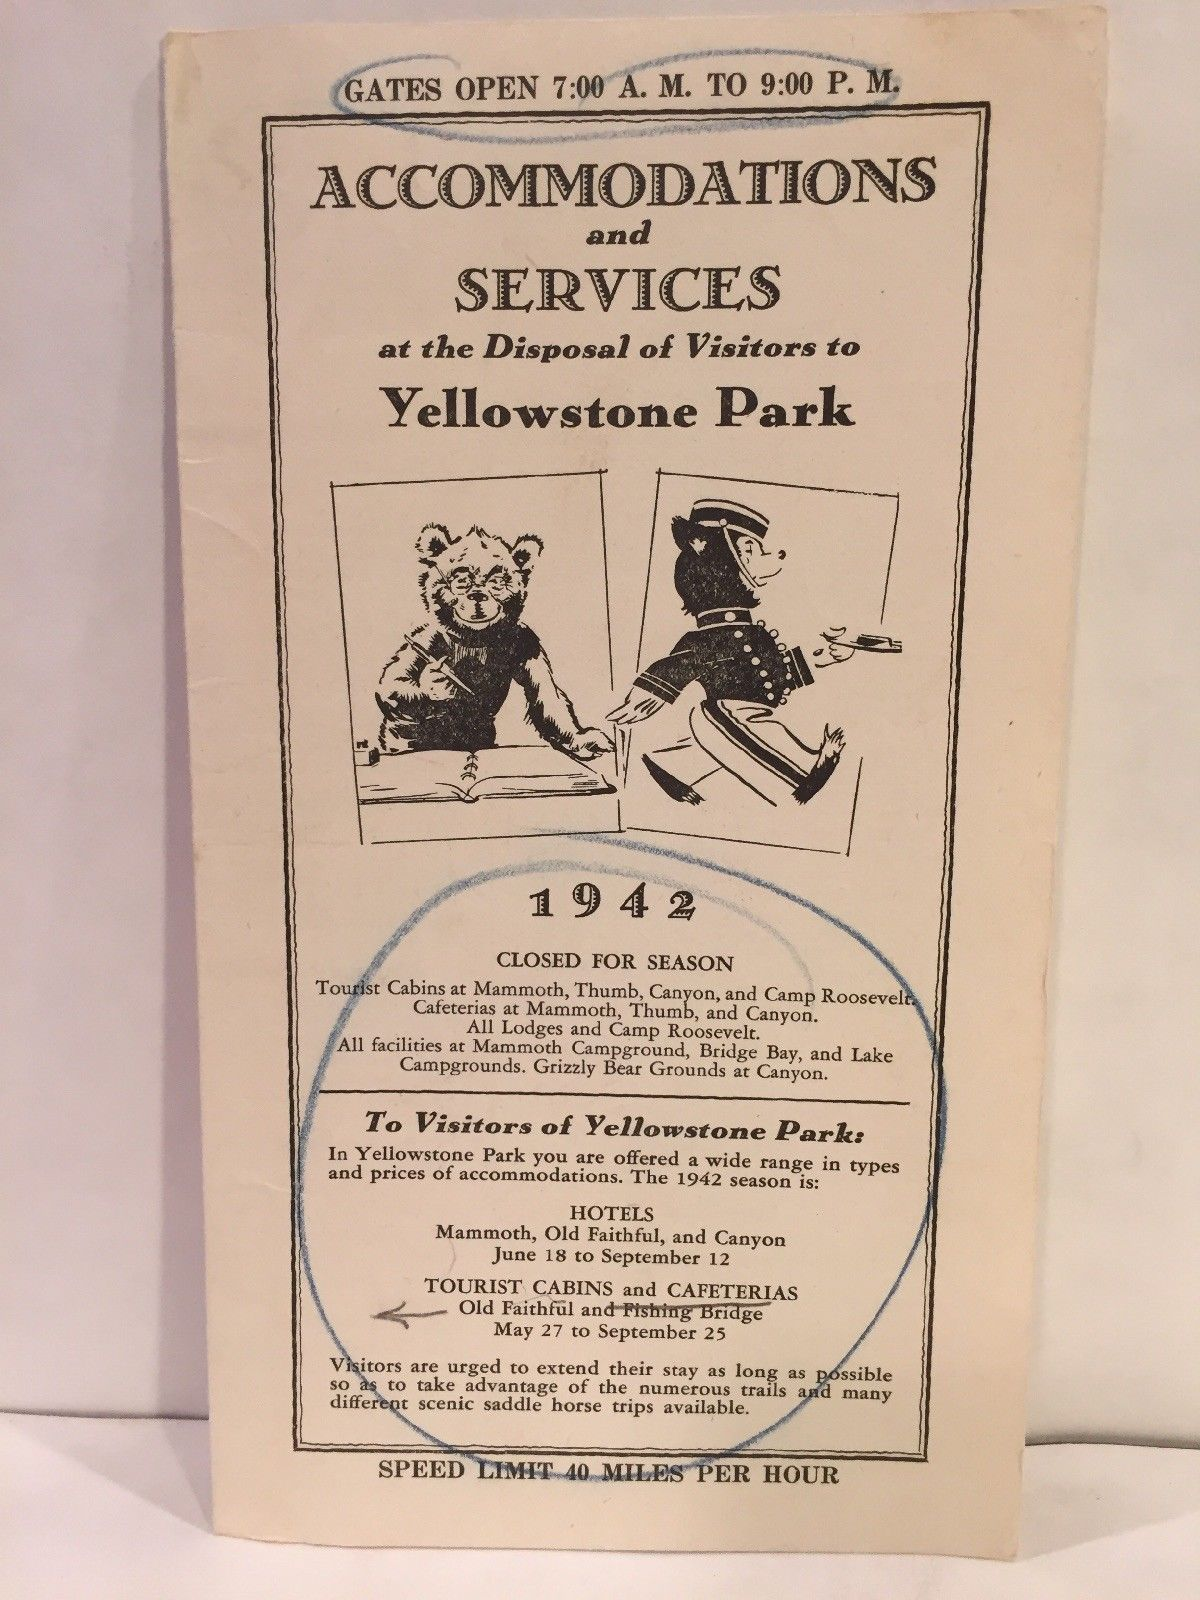 1942 ACCOMMODATIONS AND SERVICES at Yellowstone Park Tourist Cabins on half moon bay hotel map, yellowstone attractions, glacier park hotel map, harrisburg hotel map, portland hotel map, crystal springs hotel map, yellowstone weather, yellowstone postcards, georgetown hotel map, bryce canyon hotel map, death valley hotel map, florida hotel map, idaho hotel map, salem hotel map, yellowstone history, sandy beach hotel map, chicago hotel map, new york hotel map, rochester hotel map, grandview hotel map,